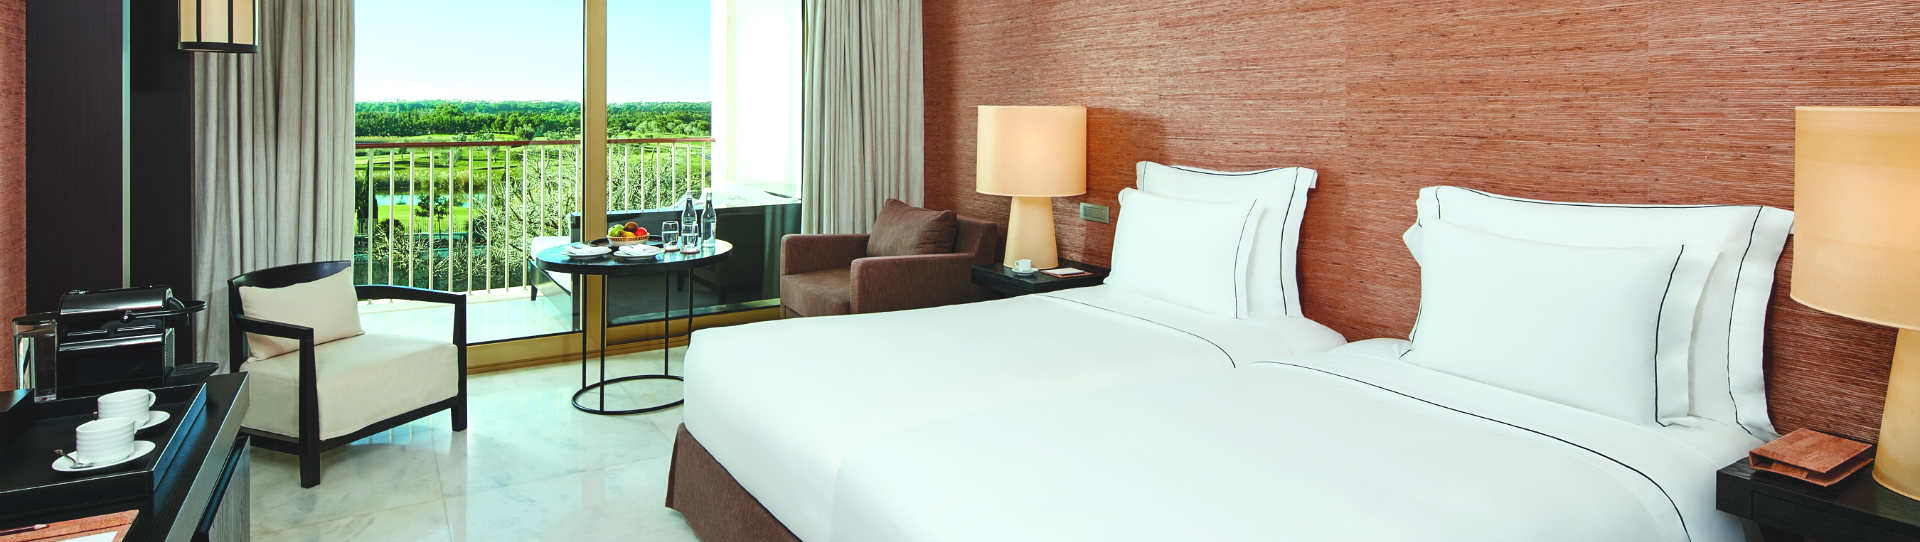 Anantara Vilamoura Algarve Resort - Photo 2